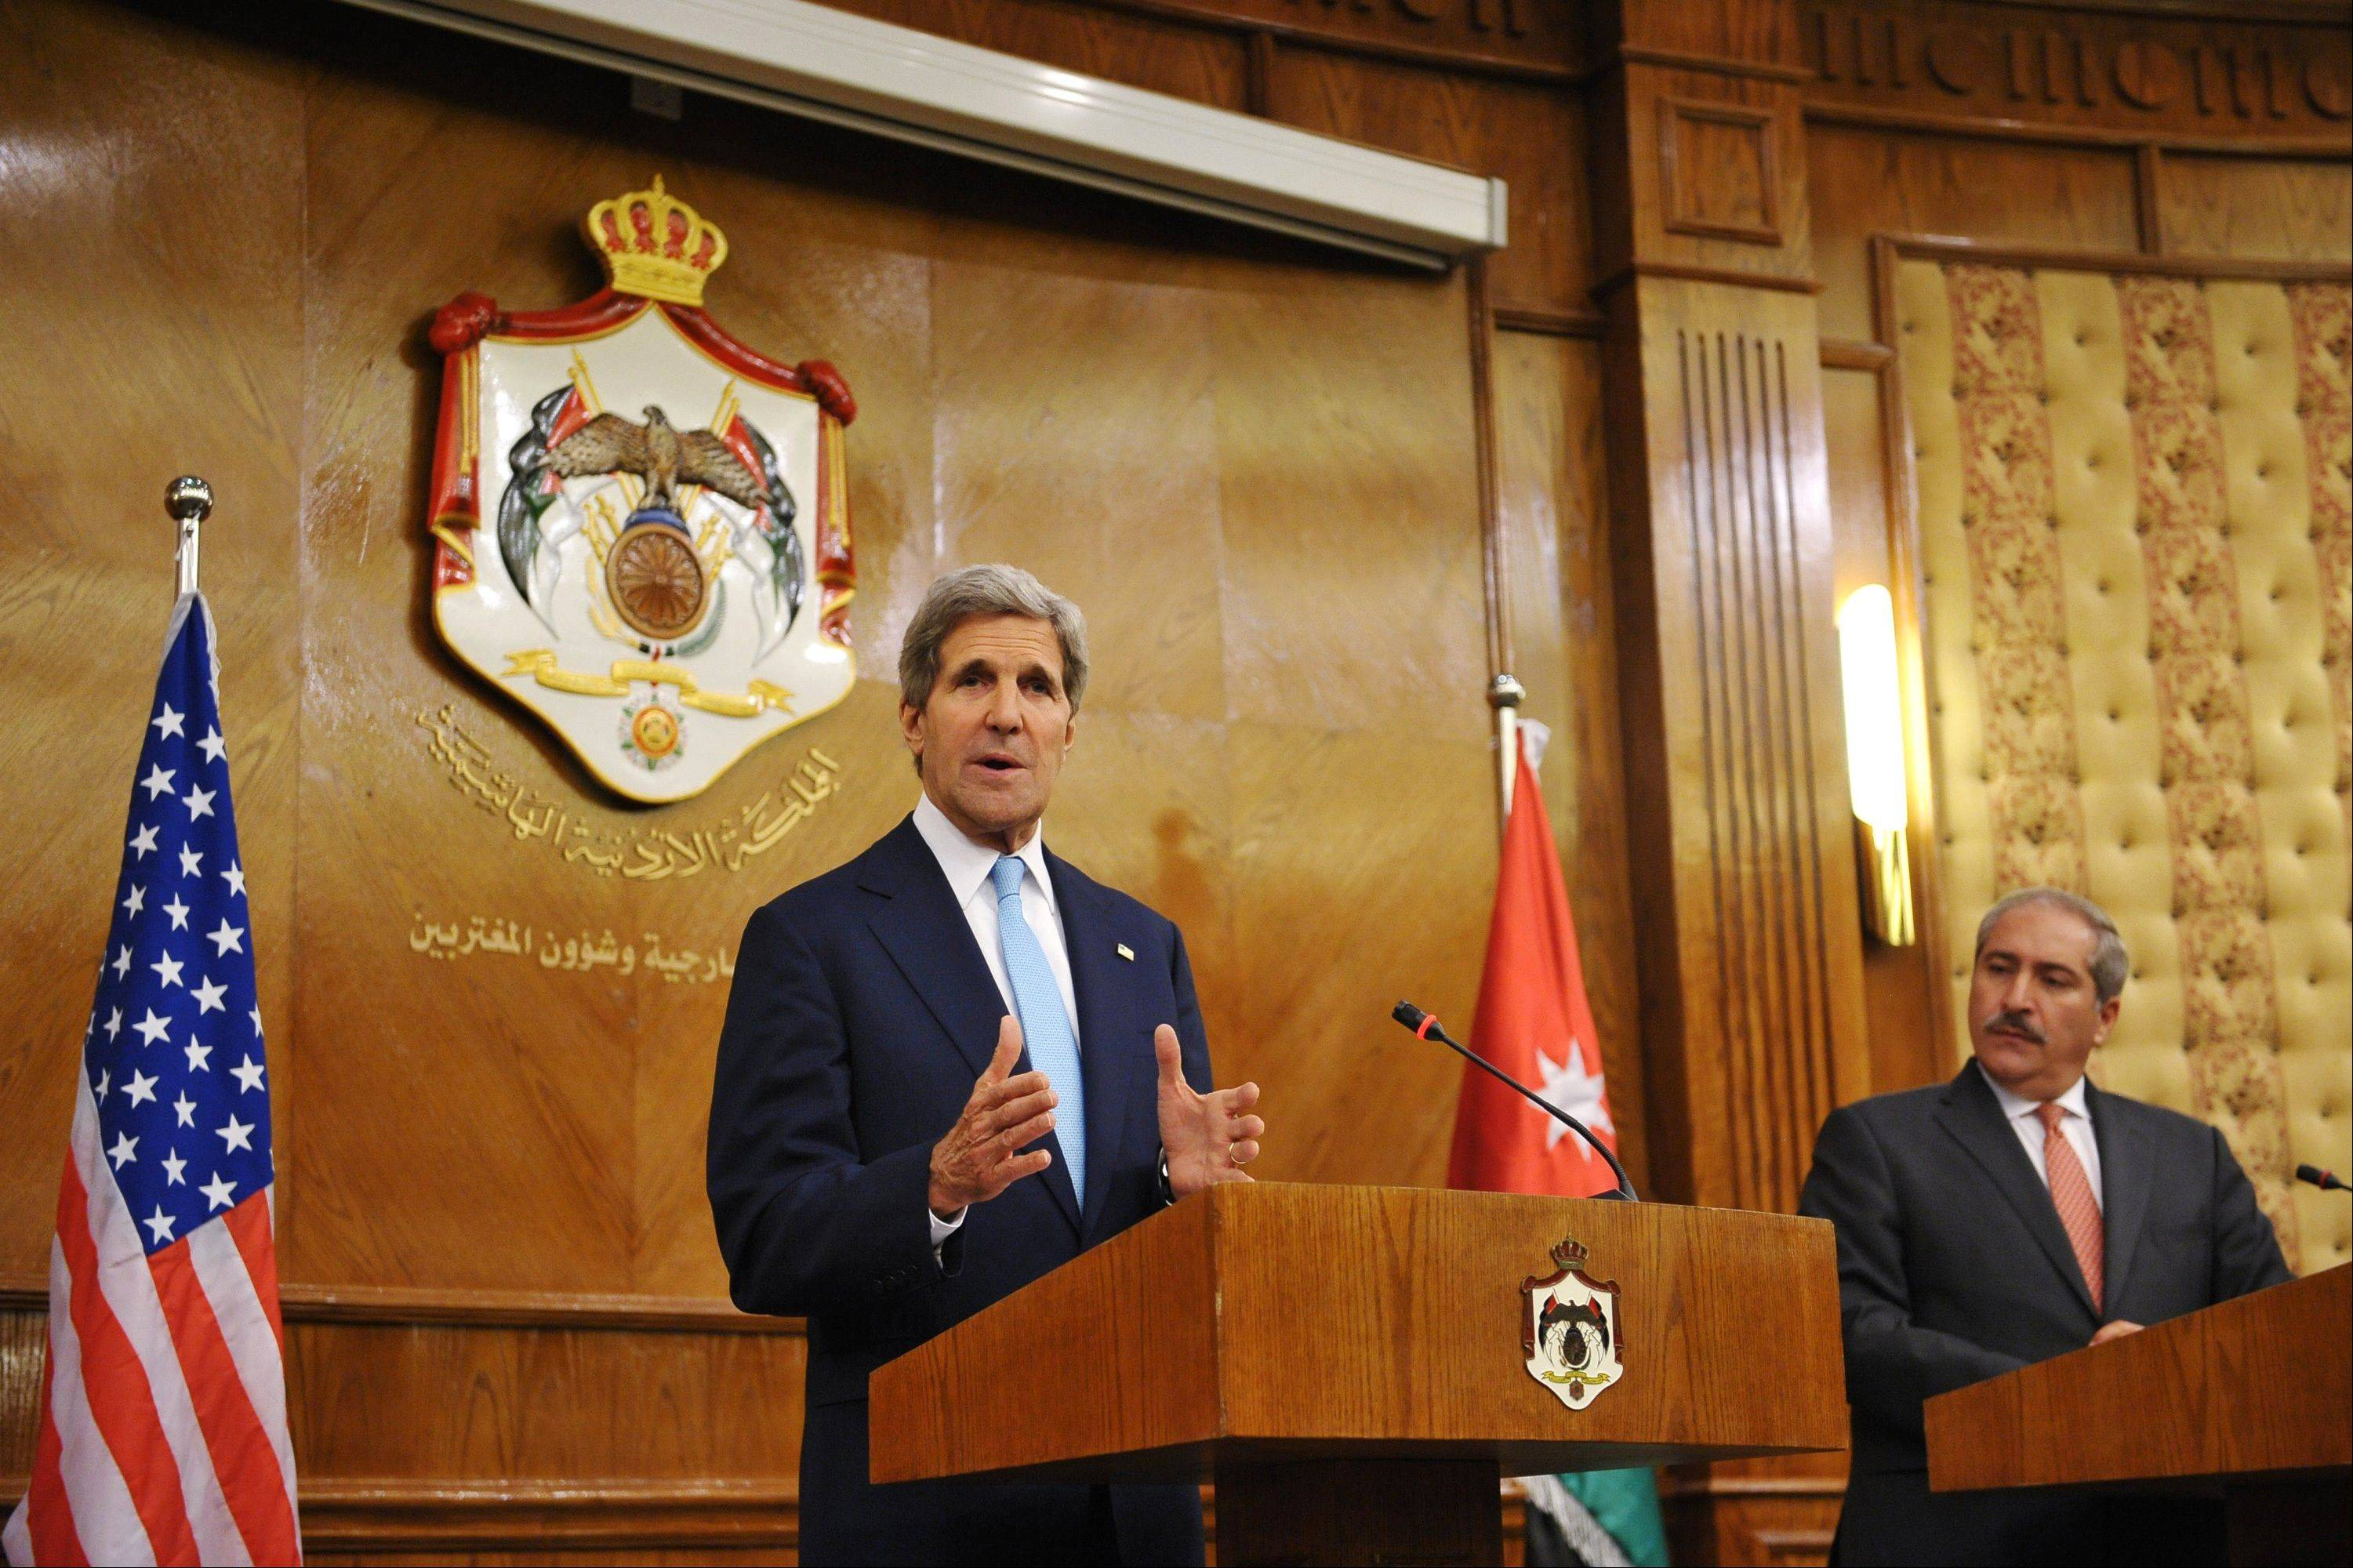 U.S. Secretary of State John Kerry speaks during a joint news conference with Jordan's Foreign Minister Nasser Judeh on Wednesday, July 17, 2013 at the Ministry of Foreign Affairs in the Jordanian capital, Amman. Kerry won Arab League backing Wednesday for his effort to restart Israeli-Palestinian peace talks, raising hopes for a quick resumption in the stalled negotiations.